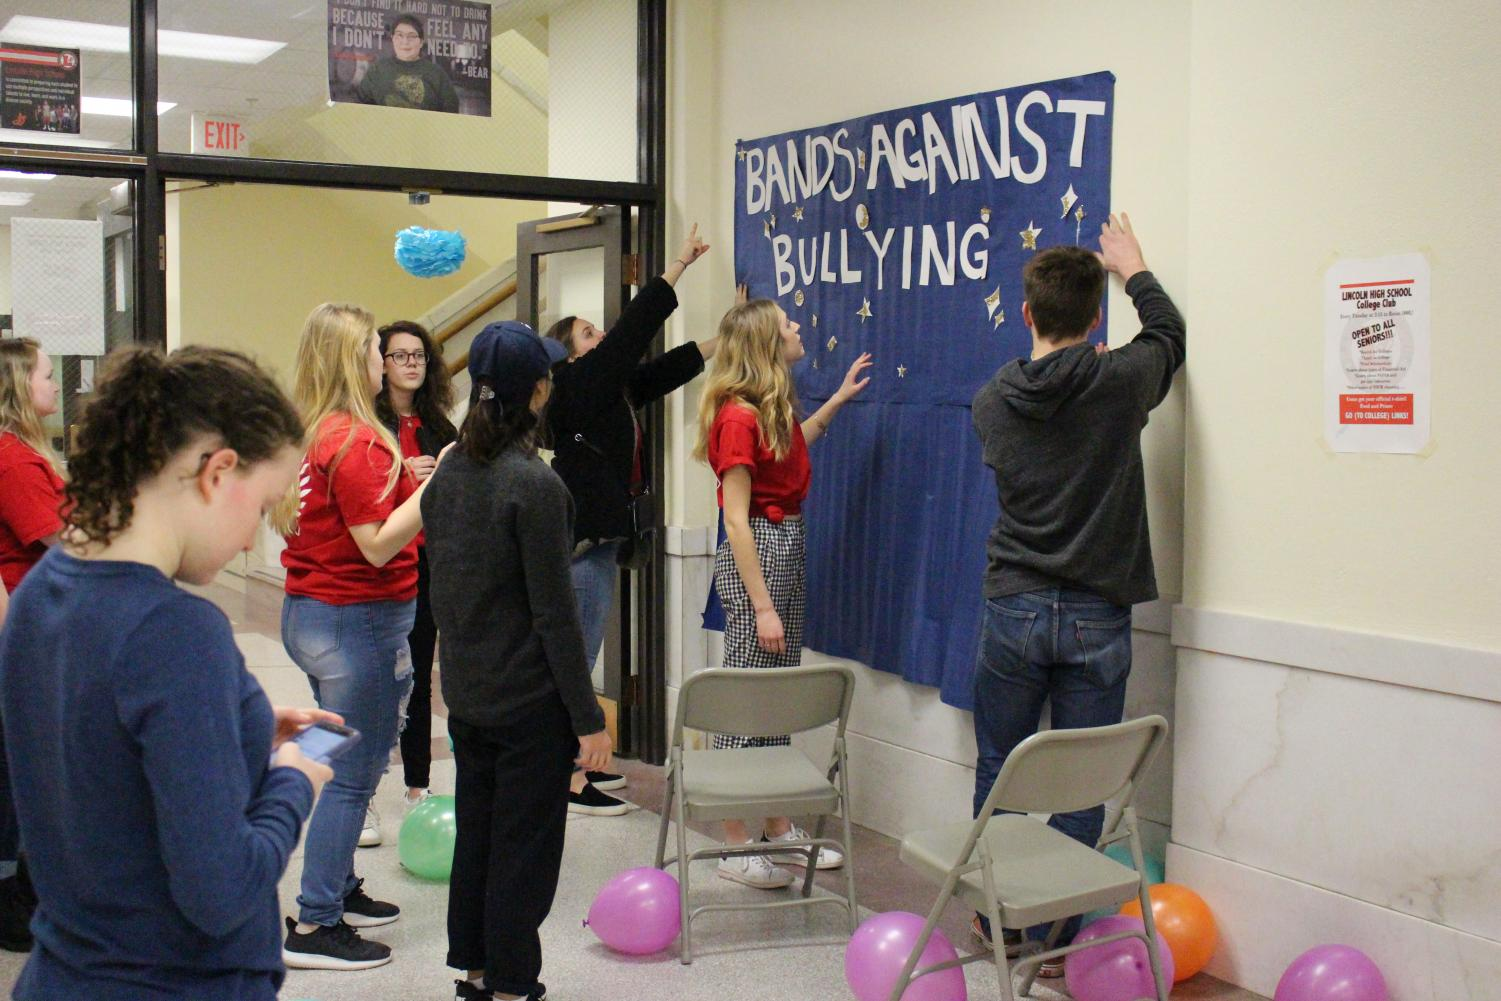 Members of StuCo 2017-18 hang a poster to set up for Bands Against Bullying. Photo by Nate Kettler.